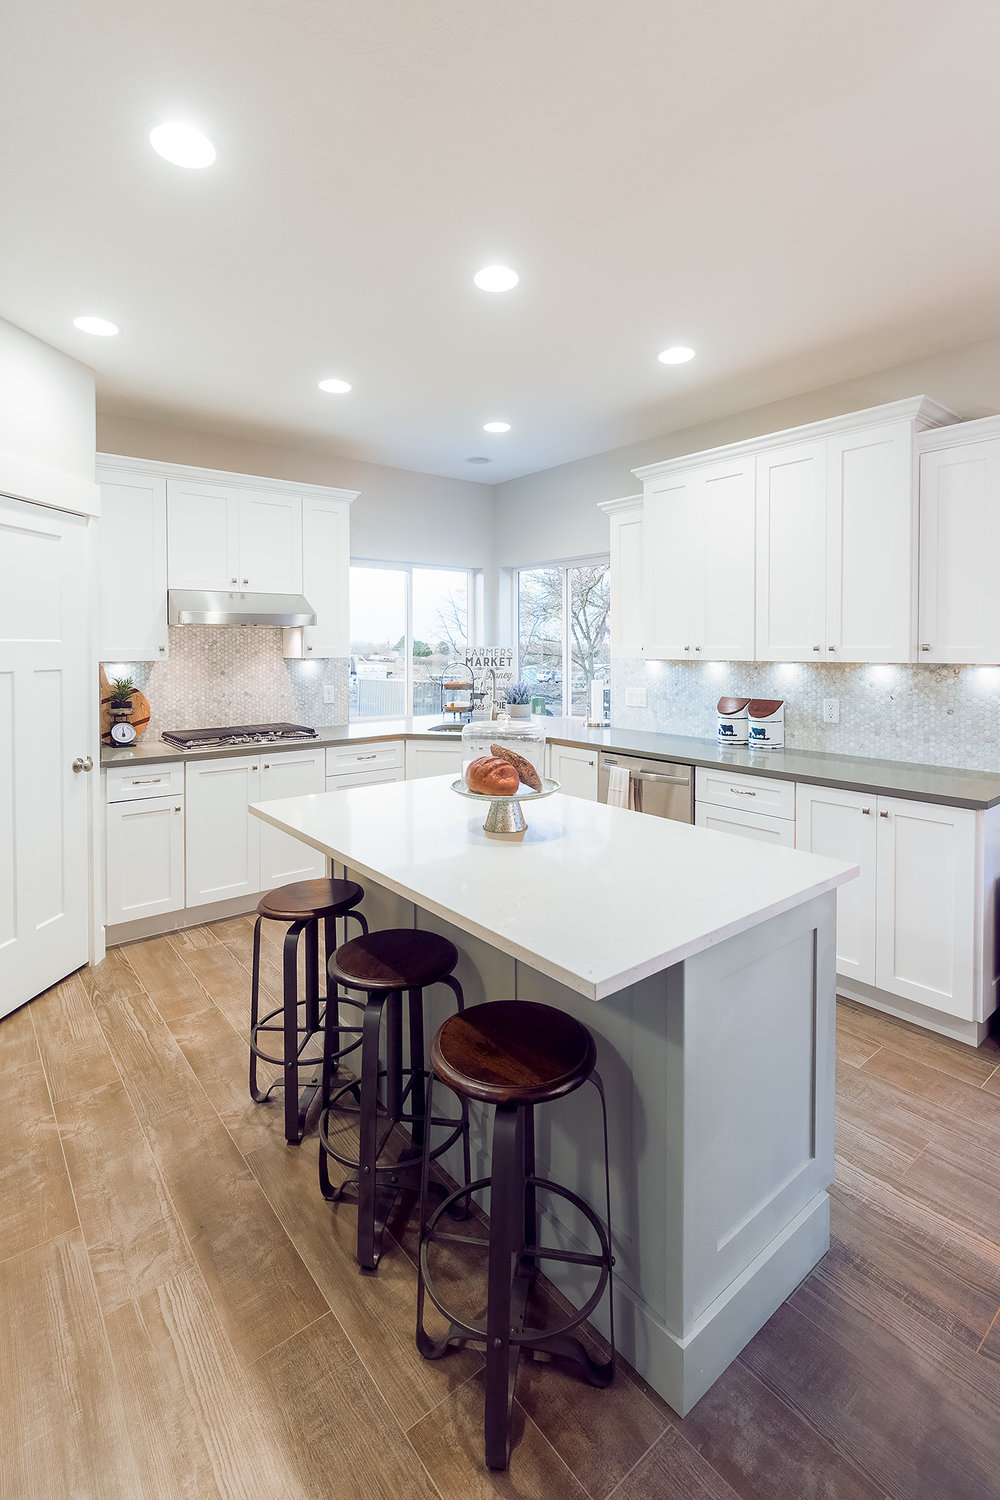 Copy of Newton Farms Kitchen.jpg & Interior Design u2014 Kenton Avenue